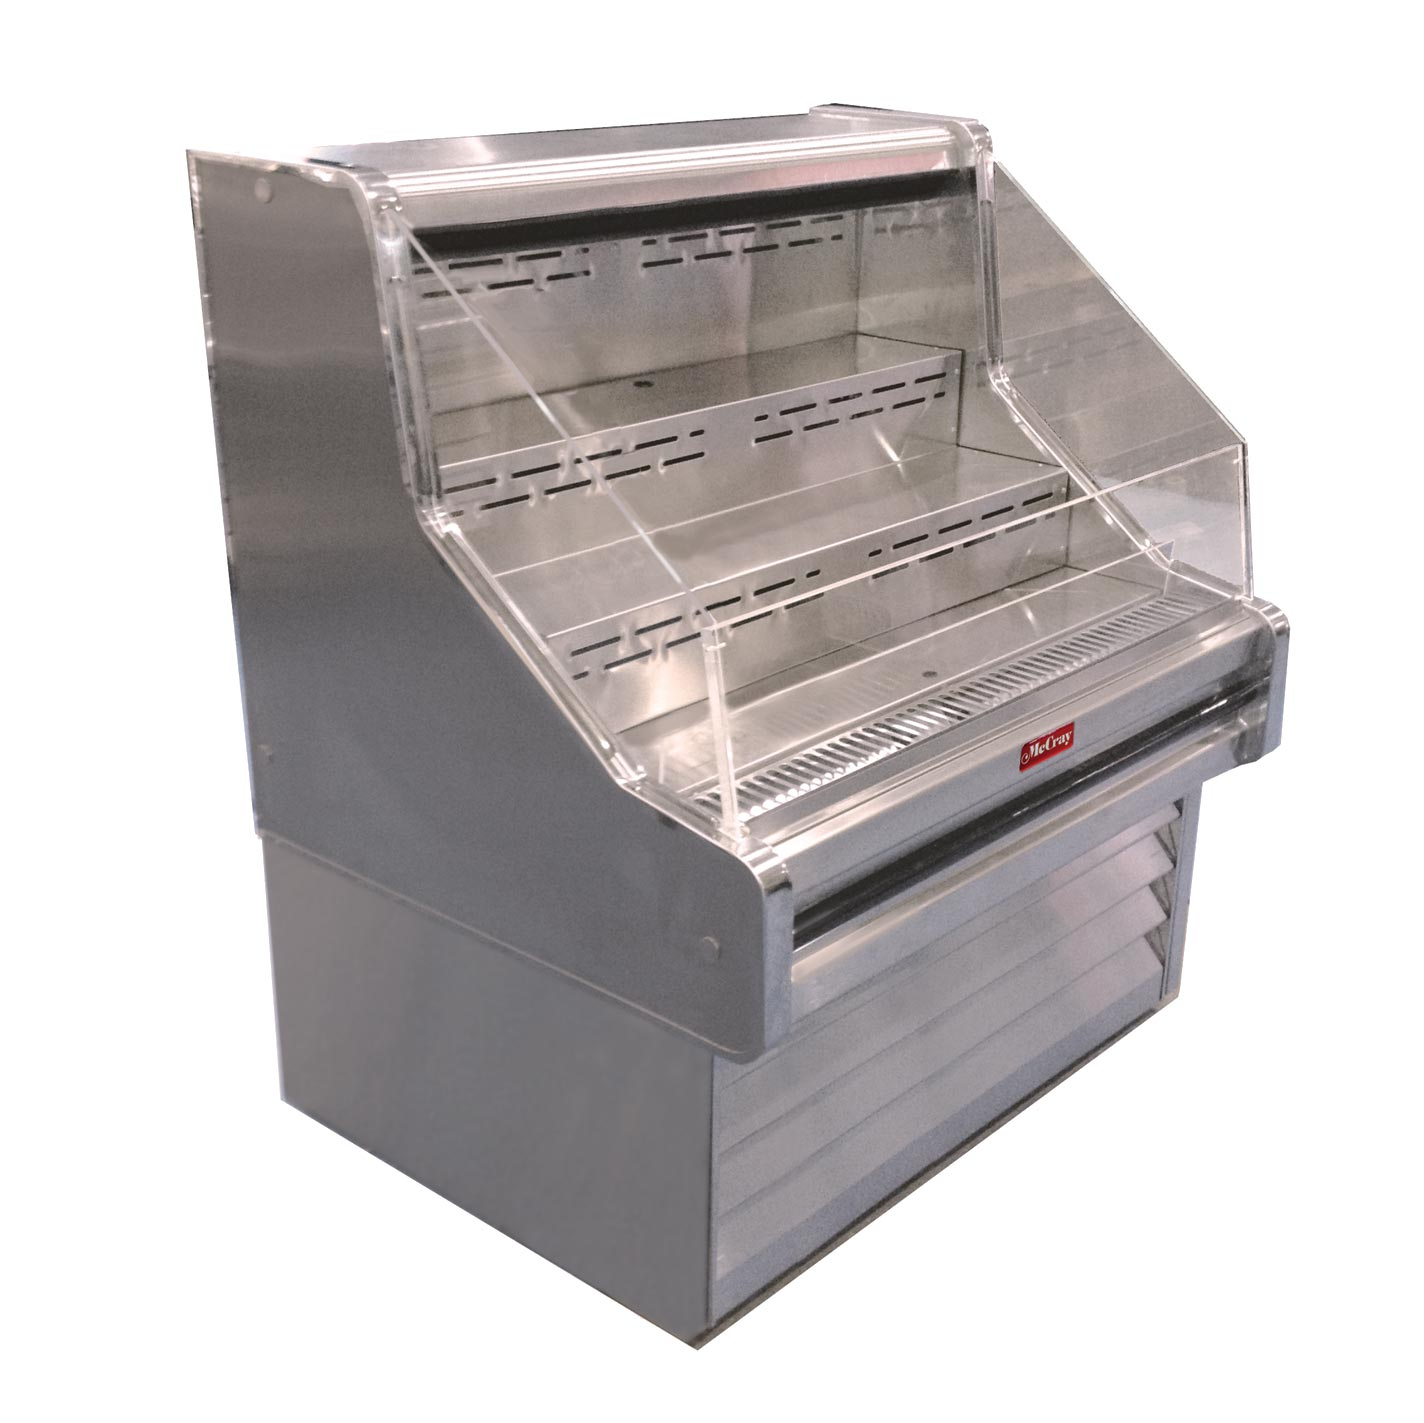 Howard-McCray SC-OS35E-4-S-LED merchandiser, open refrigerated display